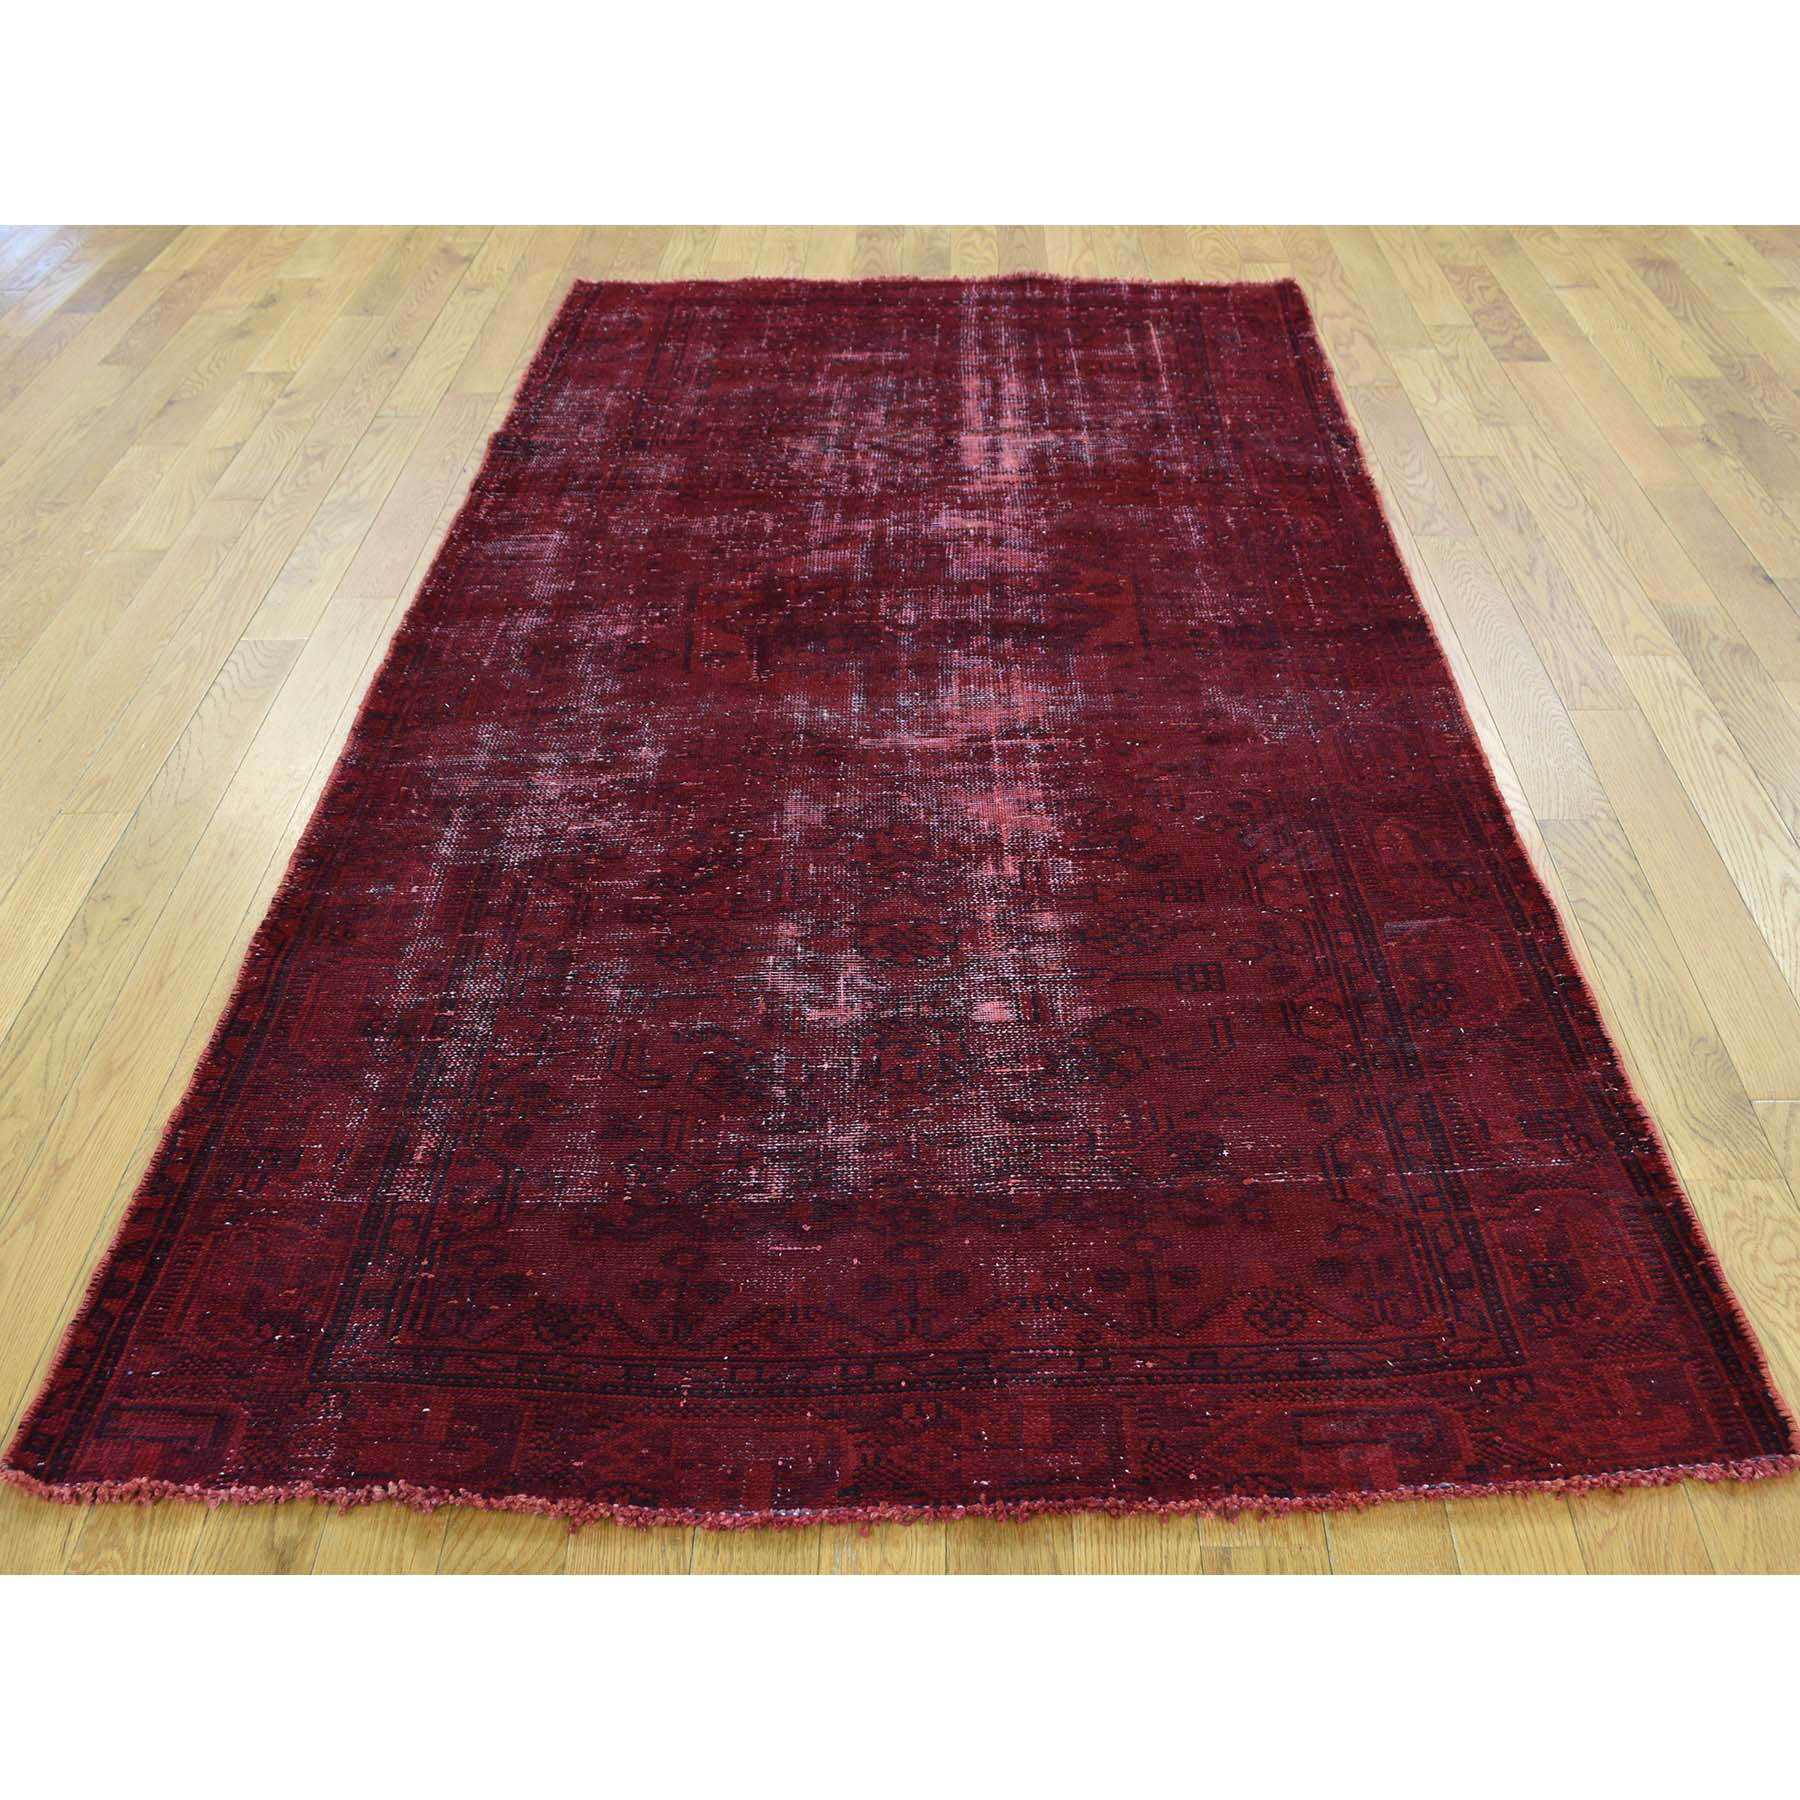 4-1 x7-6  Hand-Knotted Overdyed Persian Hamadan Worn Wide Runner Rug